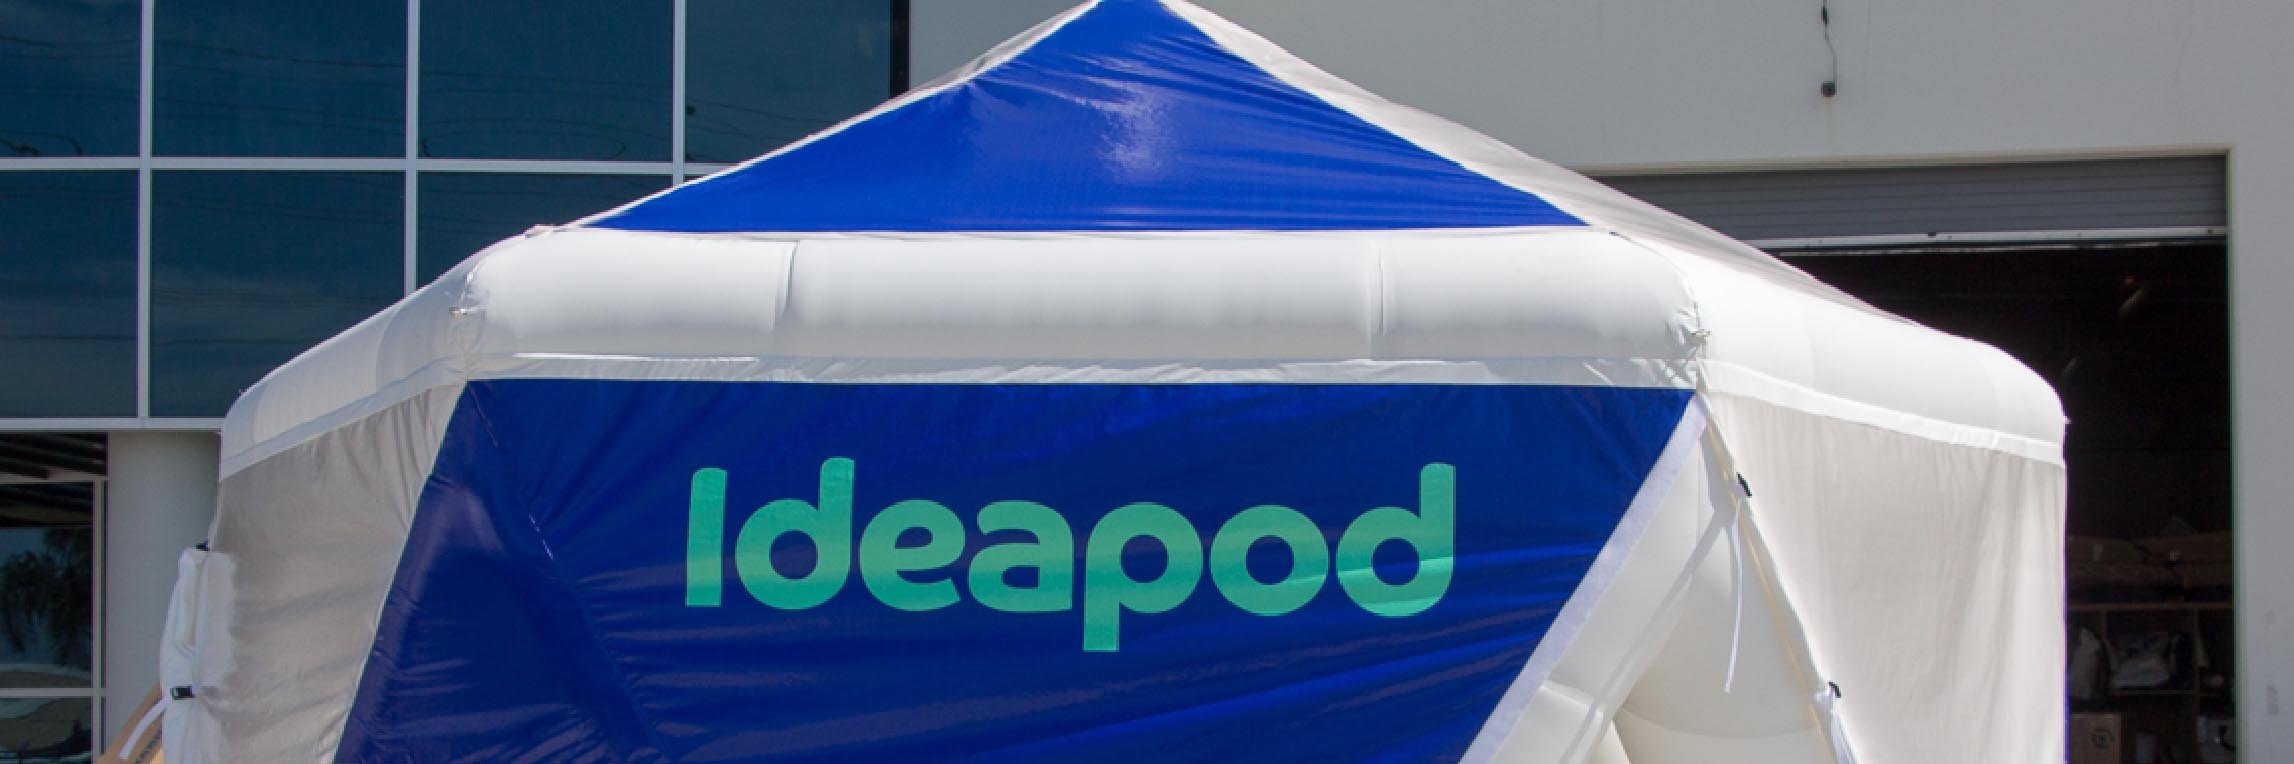 Ideapod-logo-on-an-inflatable-tent.jpg